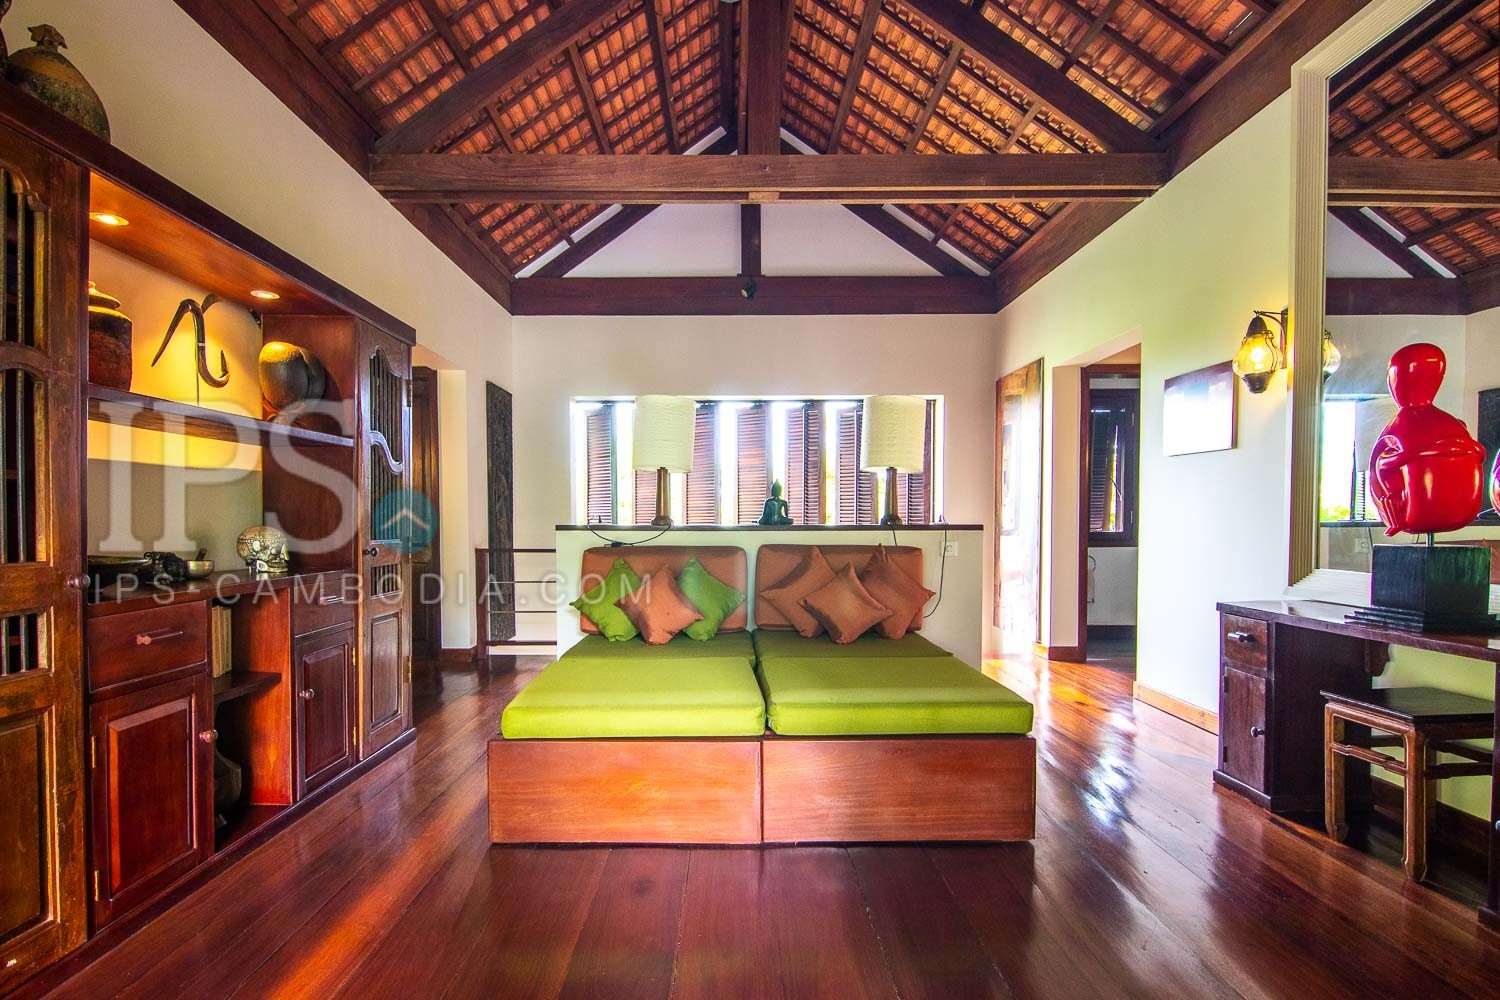 5 Bedroom Luxury Villa For Sale - Svay Dangkum, Siem Reap